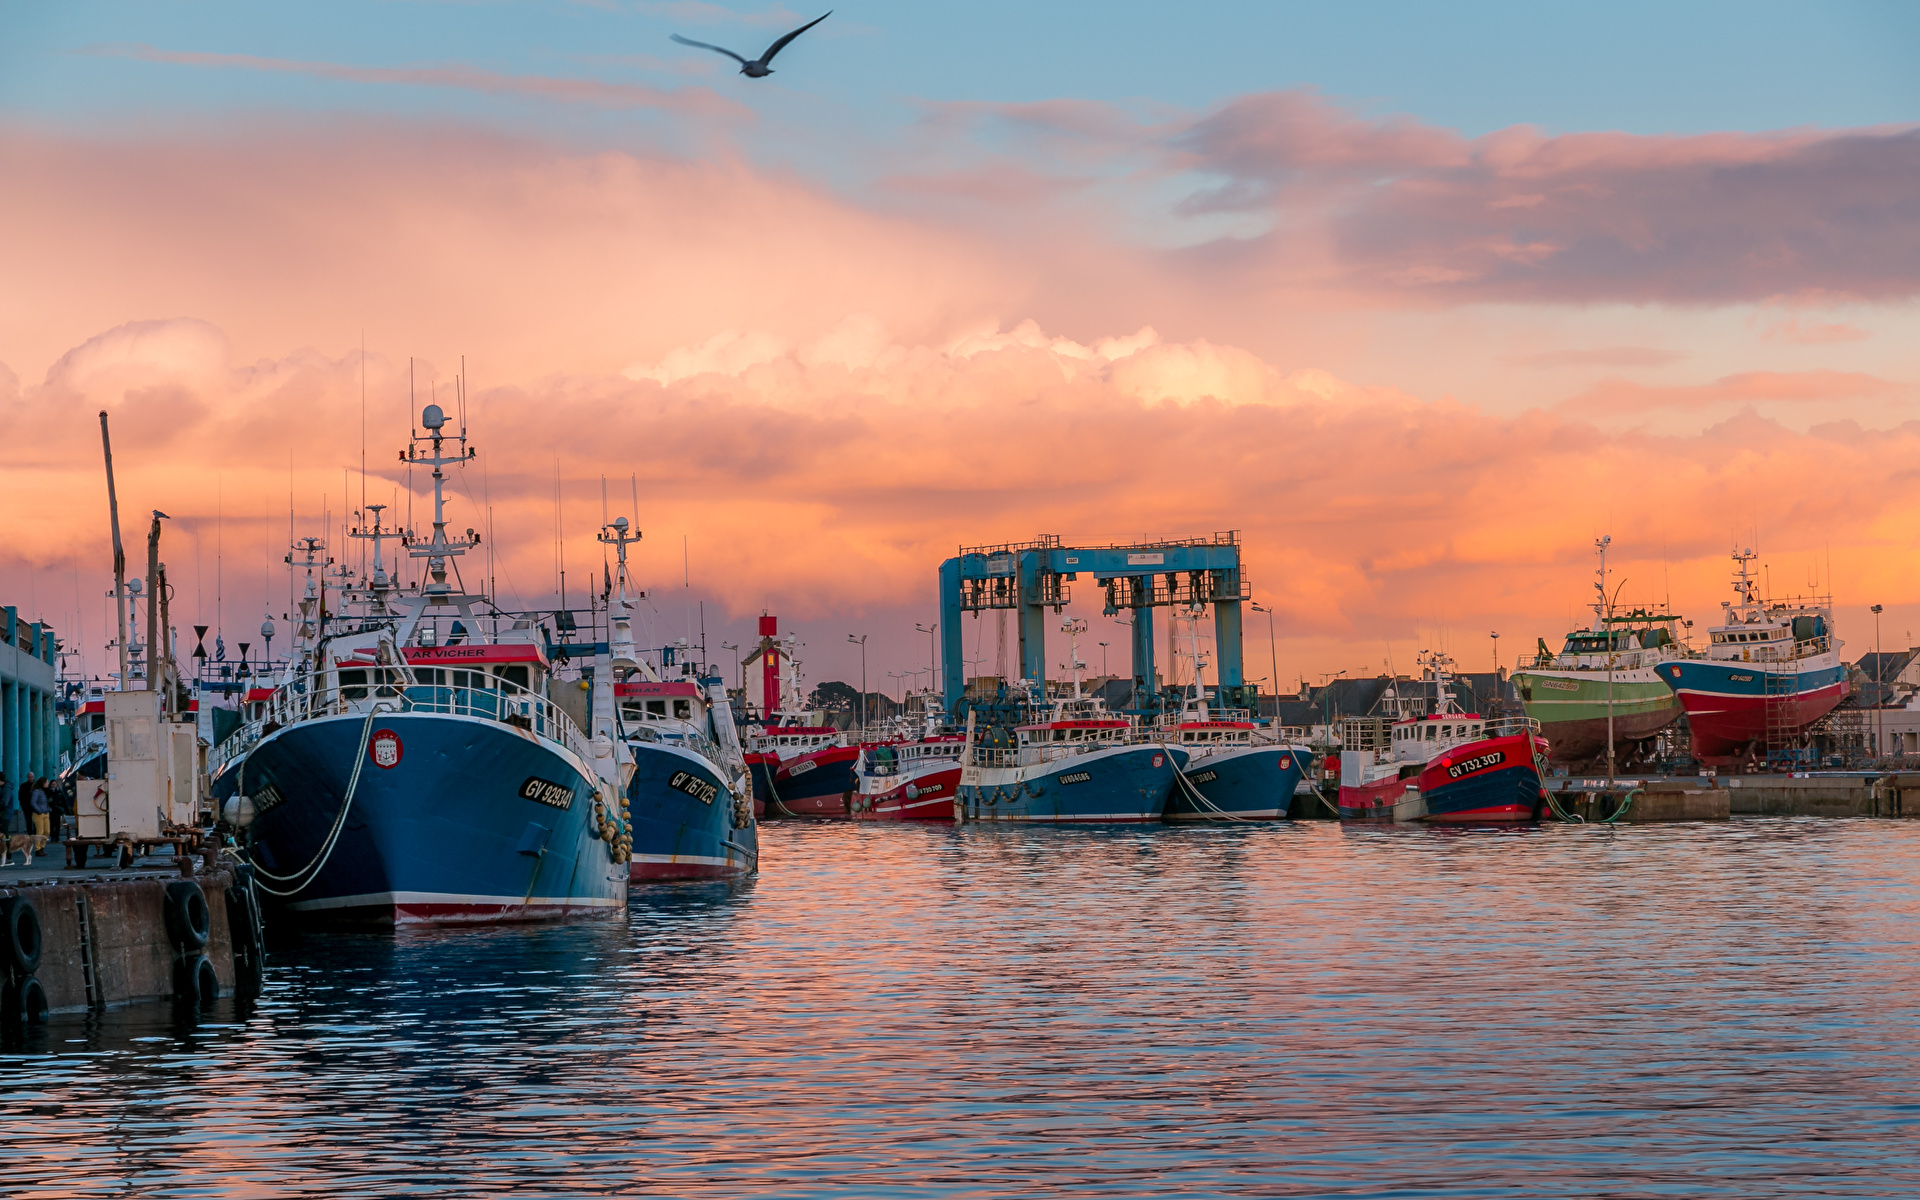 Desktop Wallpapers France Guilvinec Brittany Nature Ships Sunrises and sunsets Bay Marinas 1920x1200 ship sunrise and sunset Pier Berth